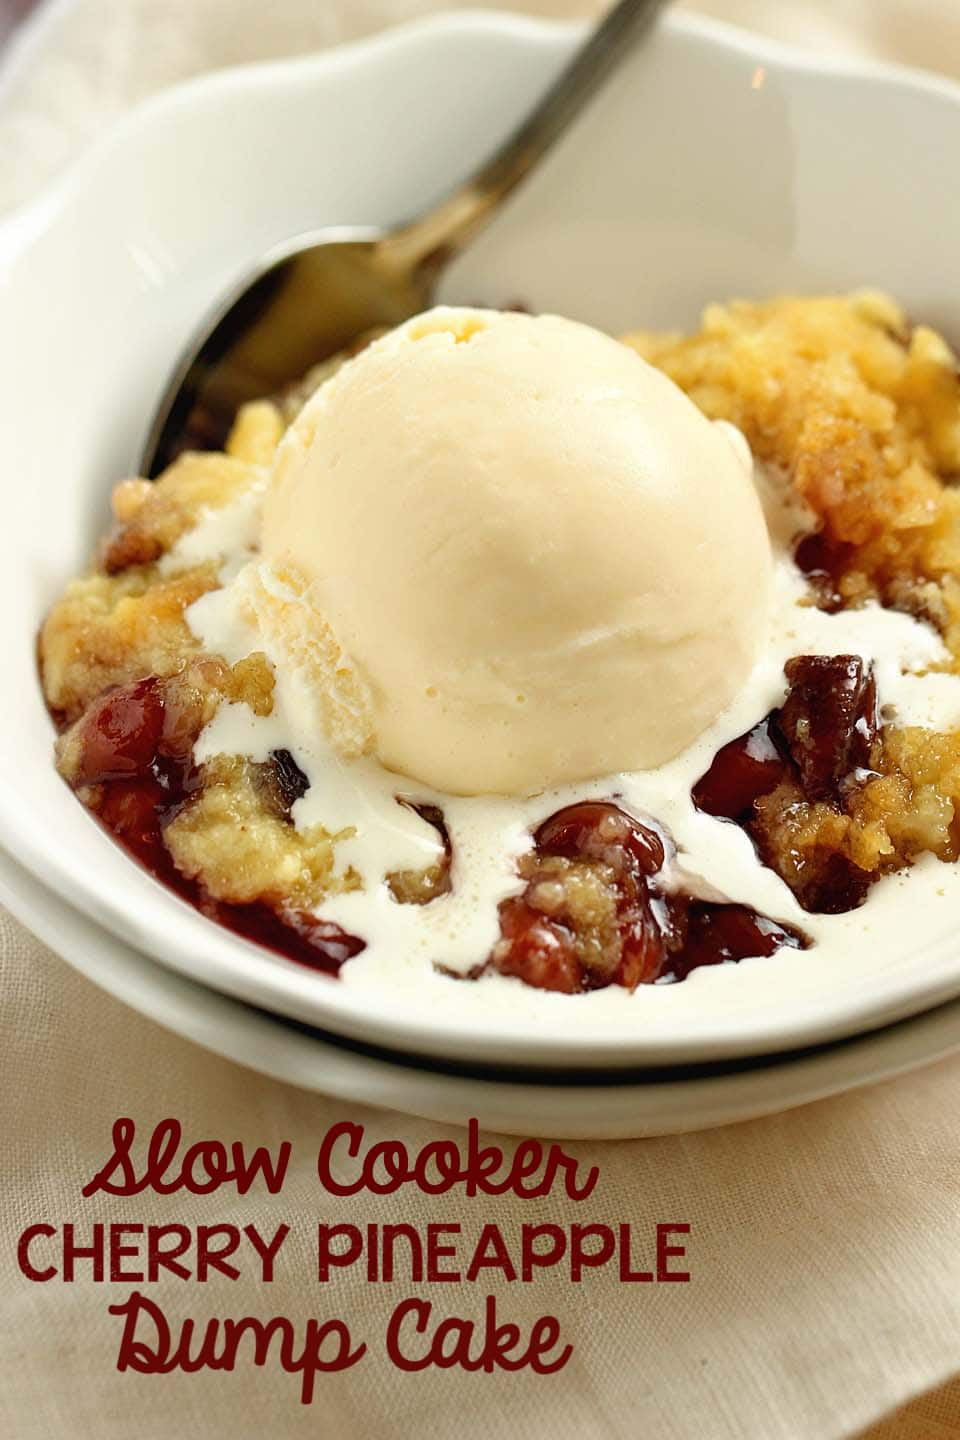 Slow Cooker Cherry Pineapple Dump Cake - No need to turn on the oven!  Let your slow cooker do all the work for this easy dessert recipe that let's you set it and forget it until it's time to eat!